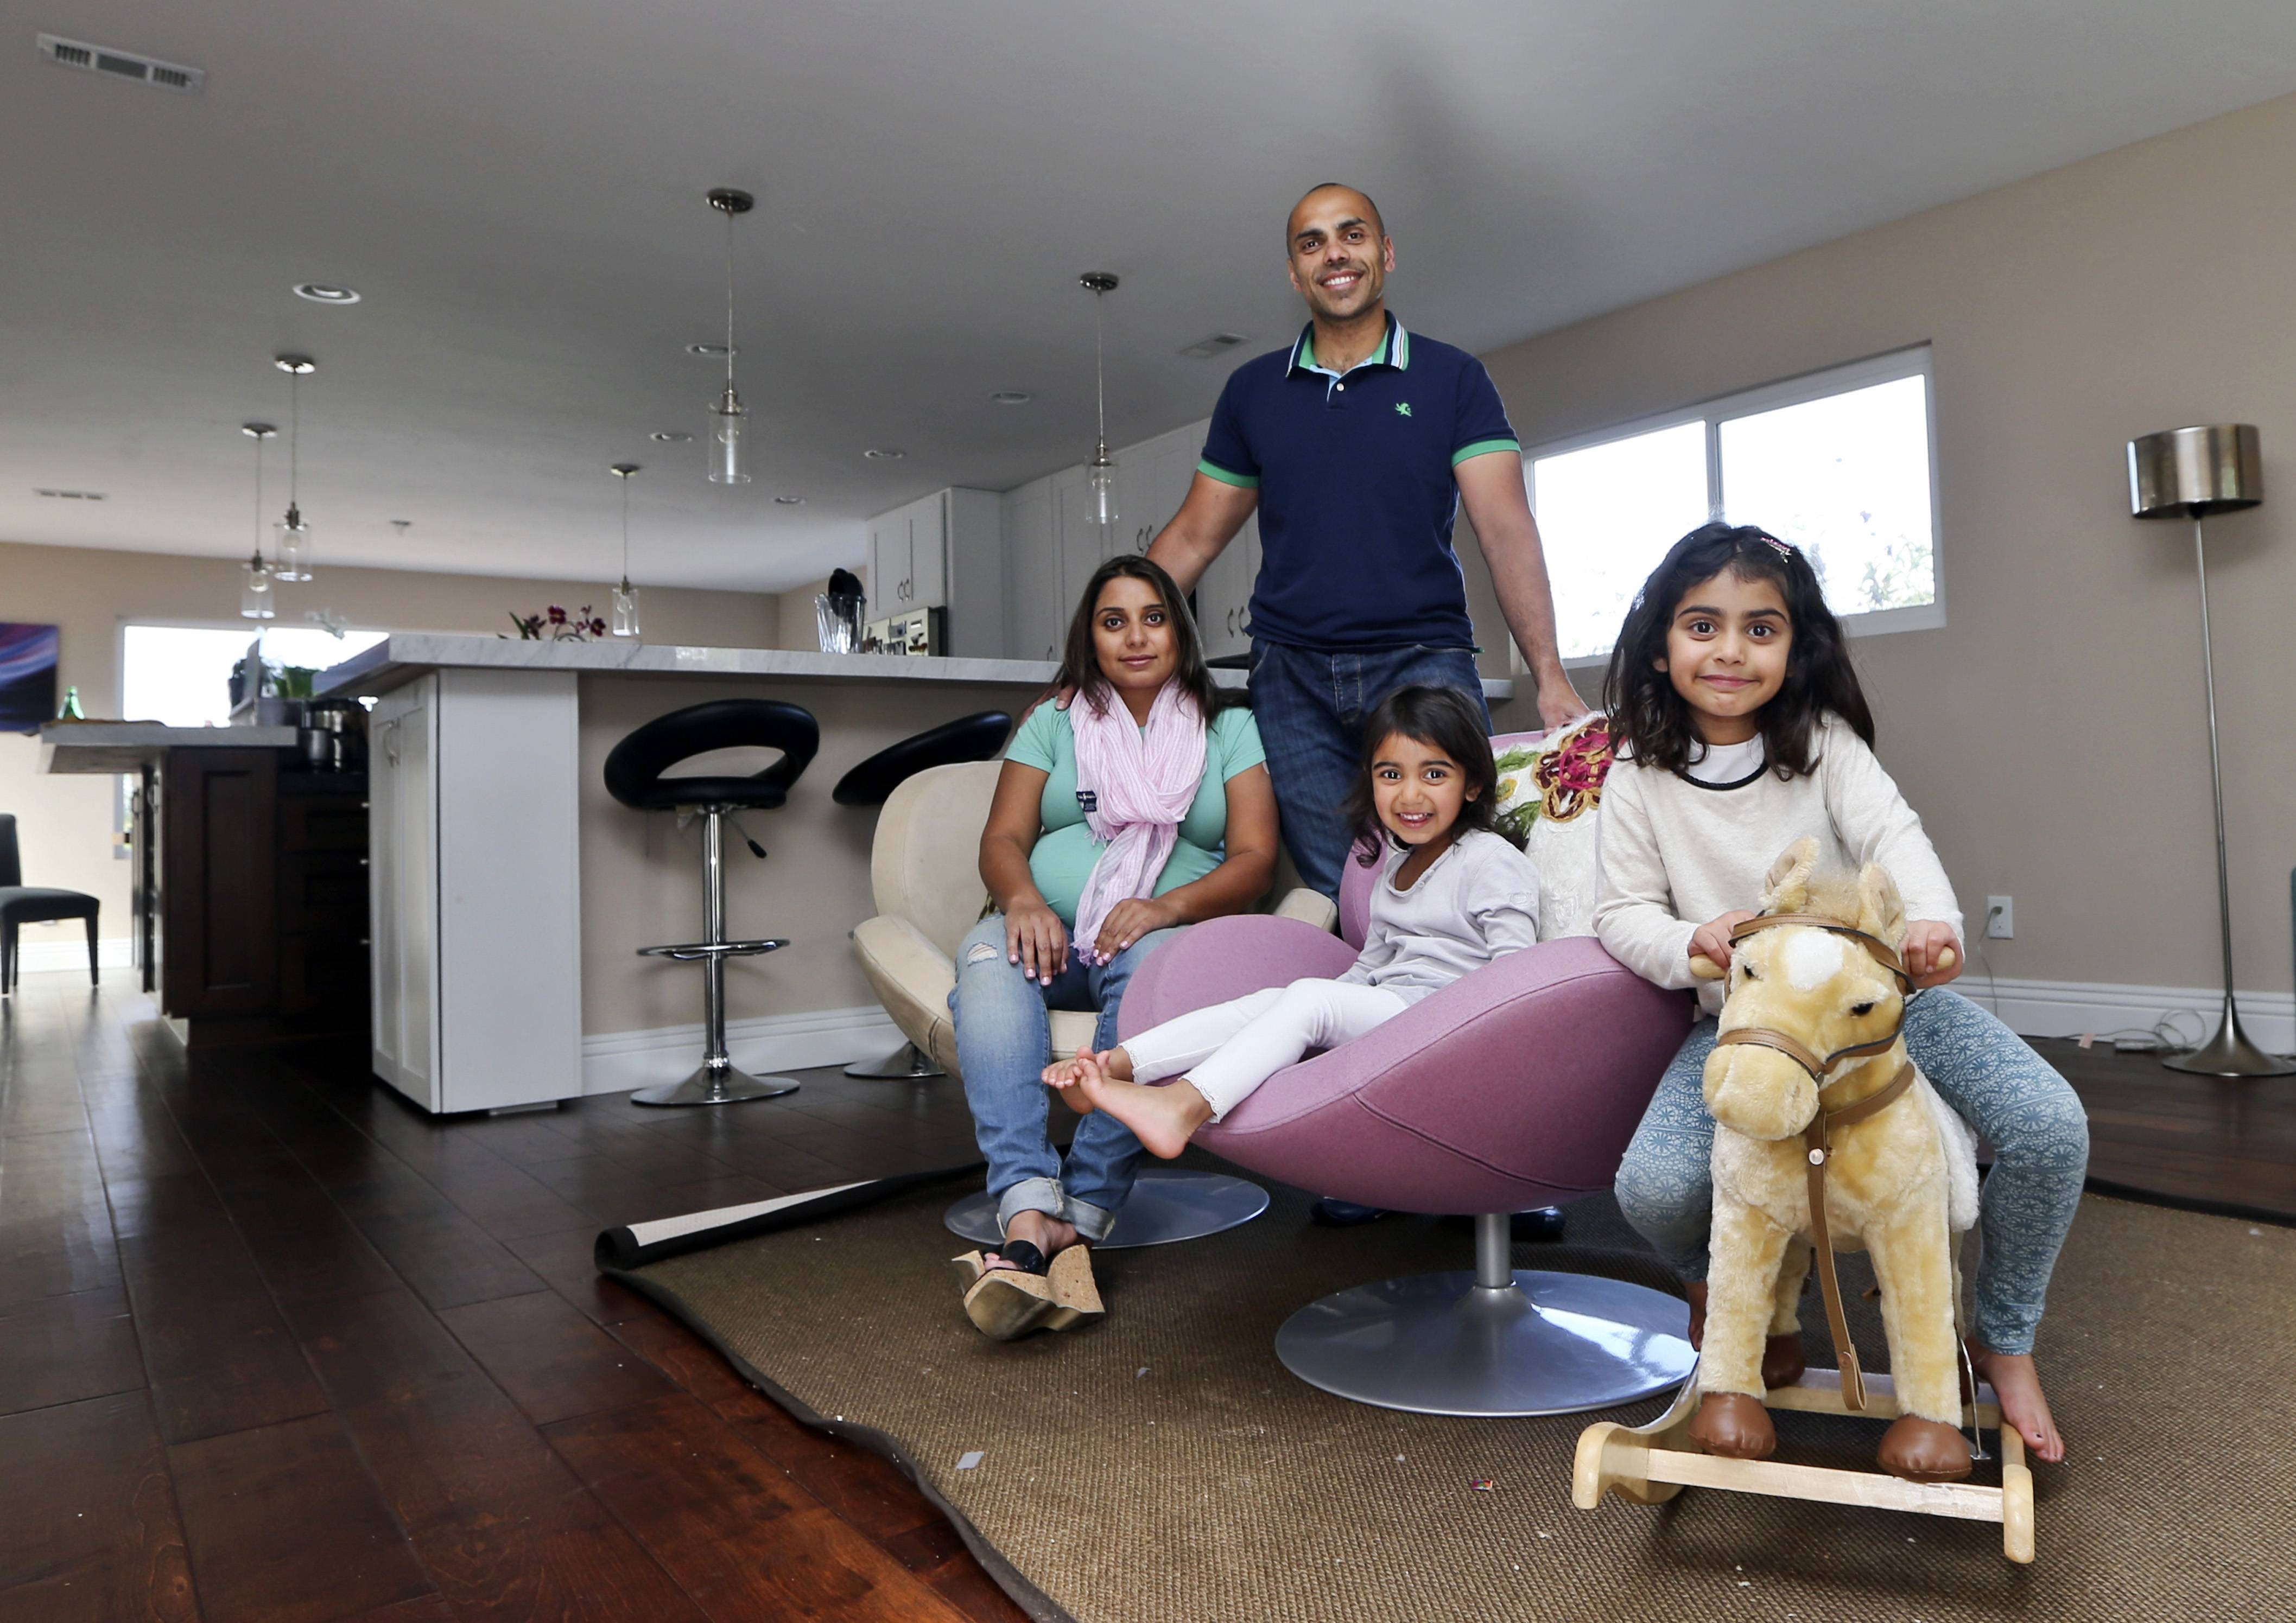 The Jaswal family, Imran, standing, wife Aniqa, left, and daughters, Arissa, right, and Jayda, pose for photos in the family room at their home in La Jolla, Calif. The couple bought the four-bedroom house about 10 minutes from the beach in February. Once Imran's management consulting business began flourishing, the couple felt comfortable enough after years of renting to buy their first home.